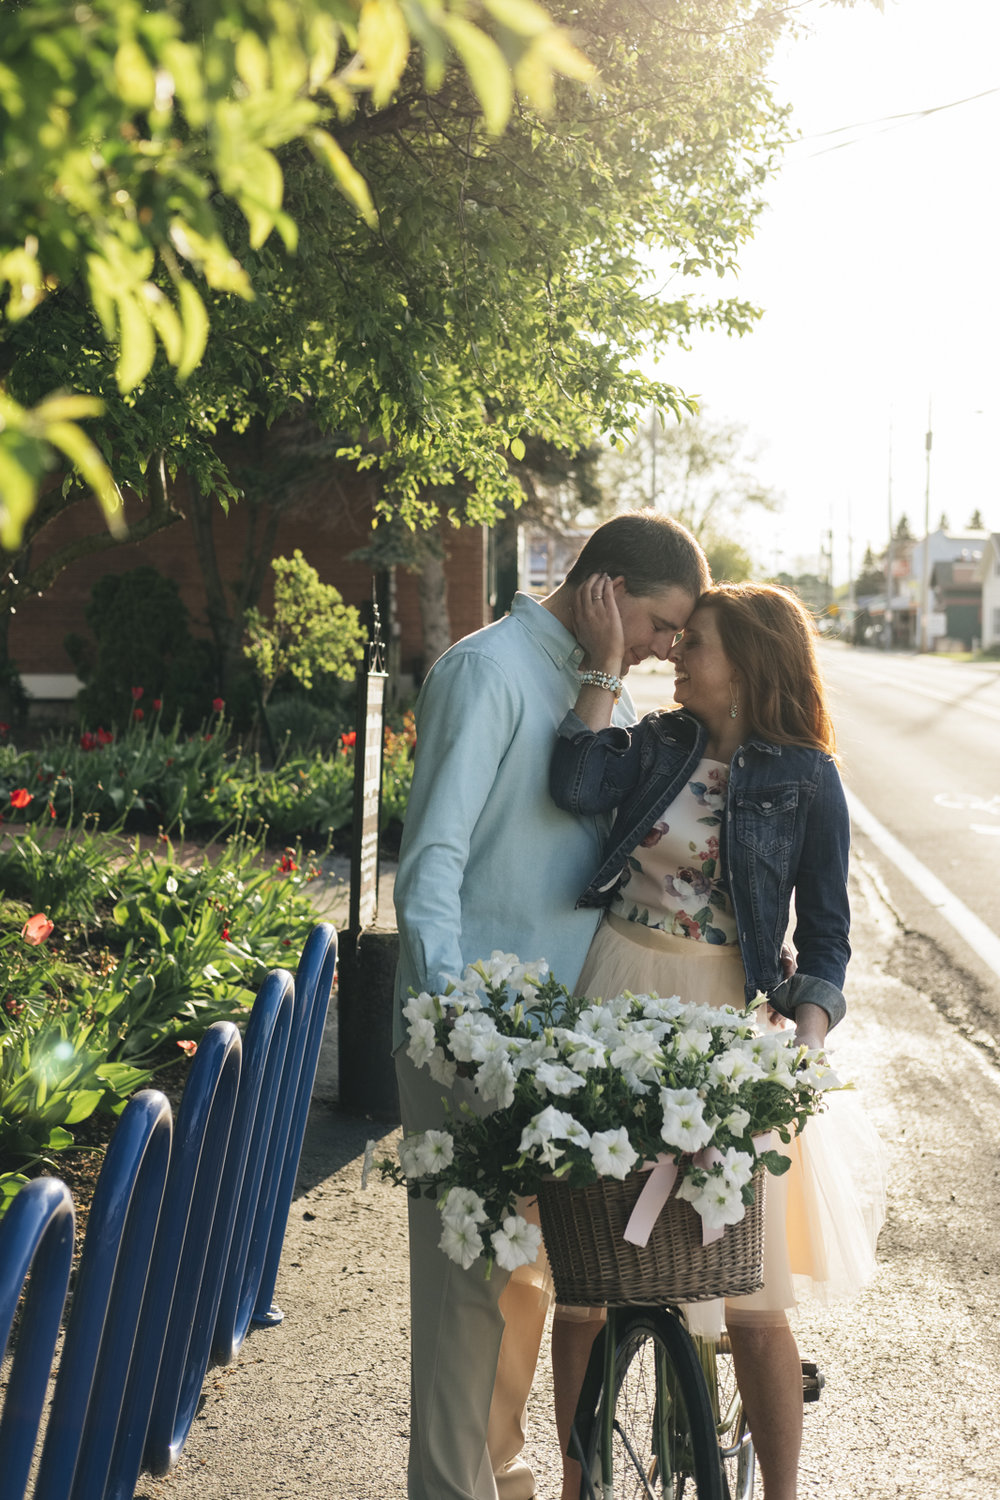 Cute Marblehead, Ohio engagement session at sunset.